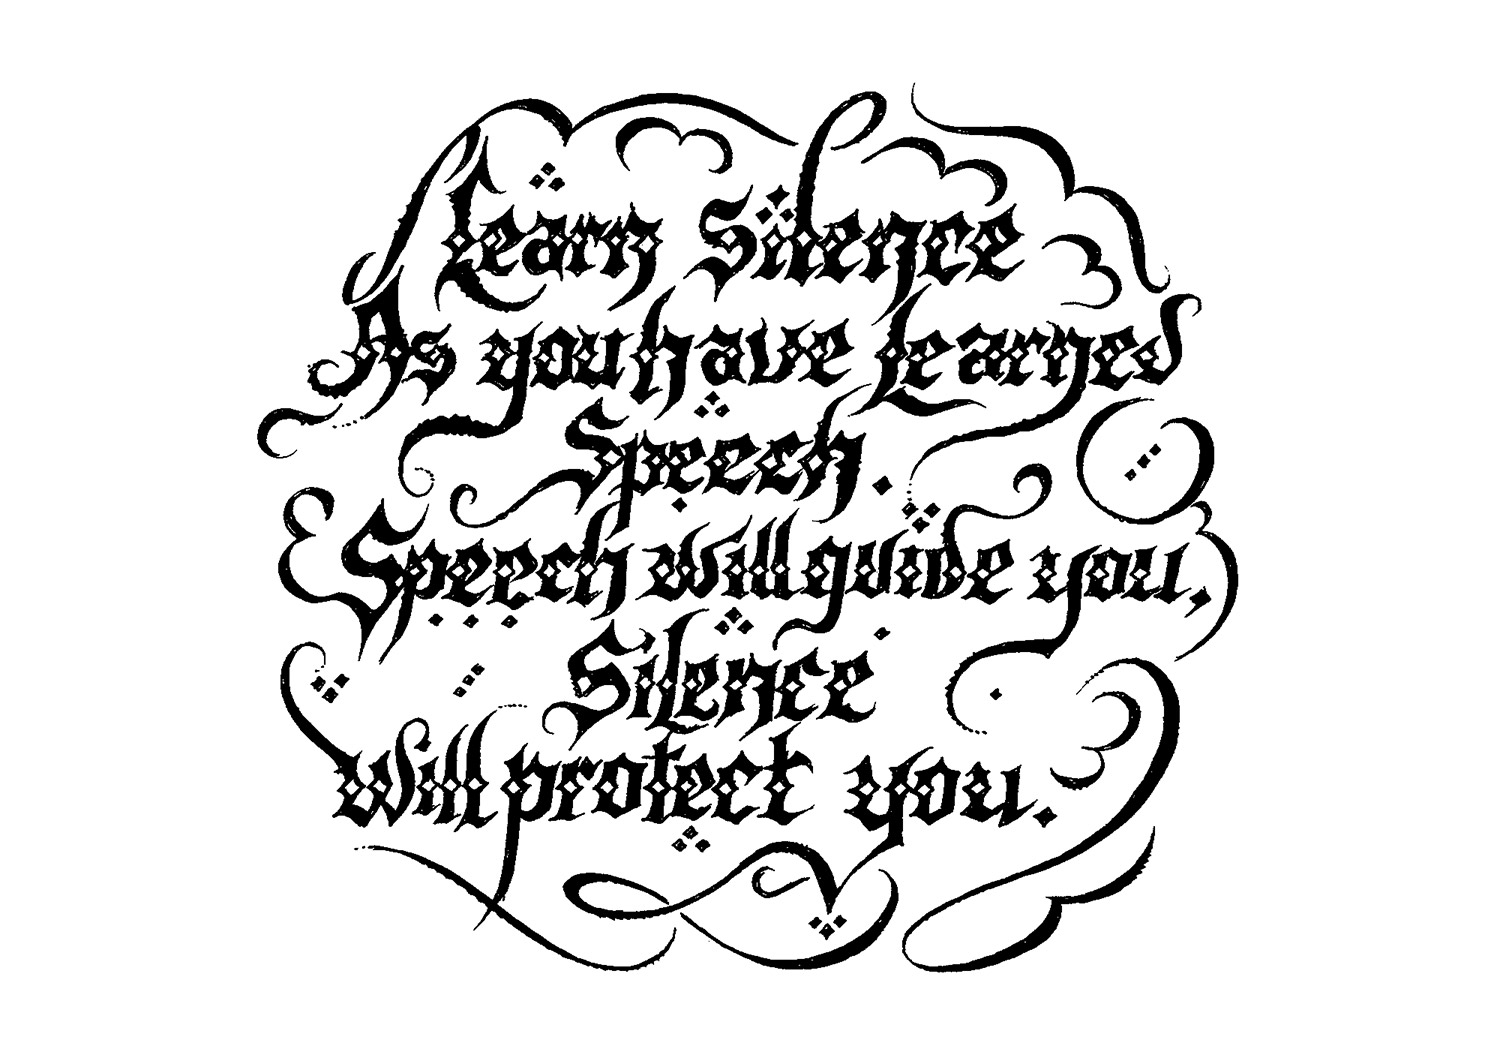 img/galleries/typography/Learn-silence.jpg